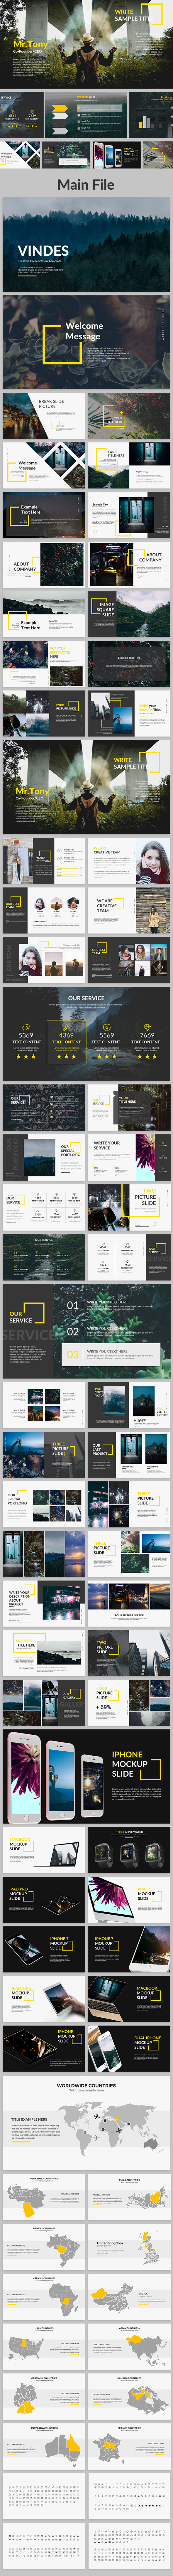 Vindes - Creative Keynote Template - Creative Keynote Templates